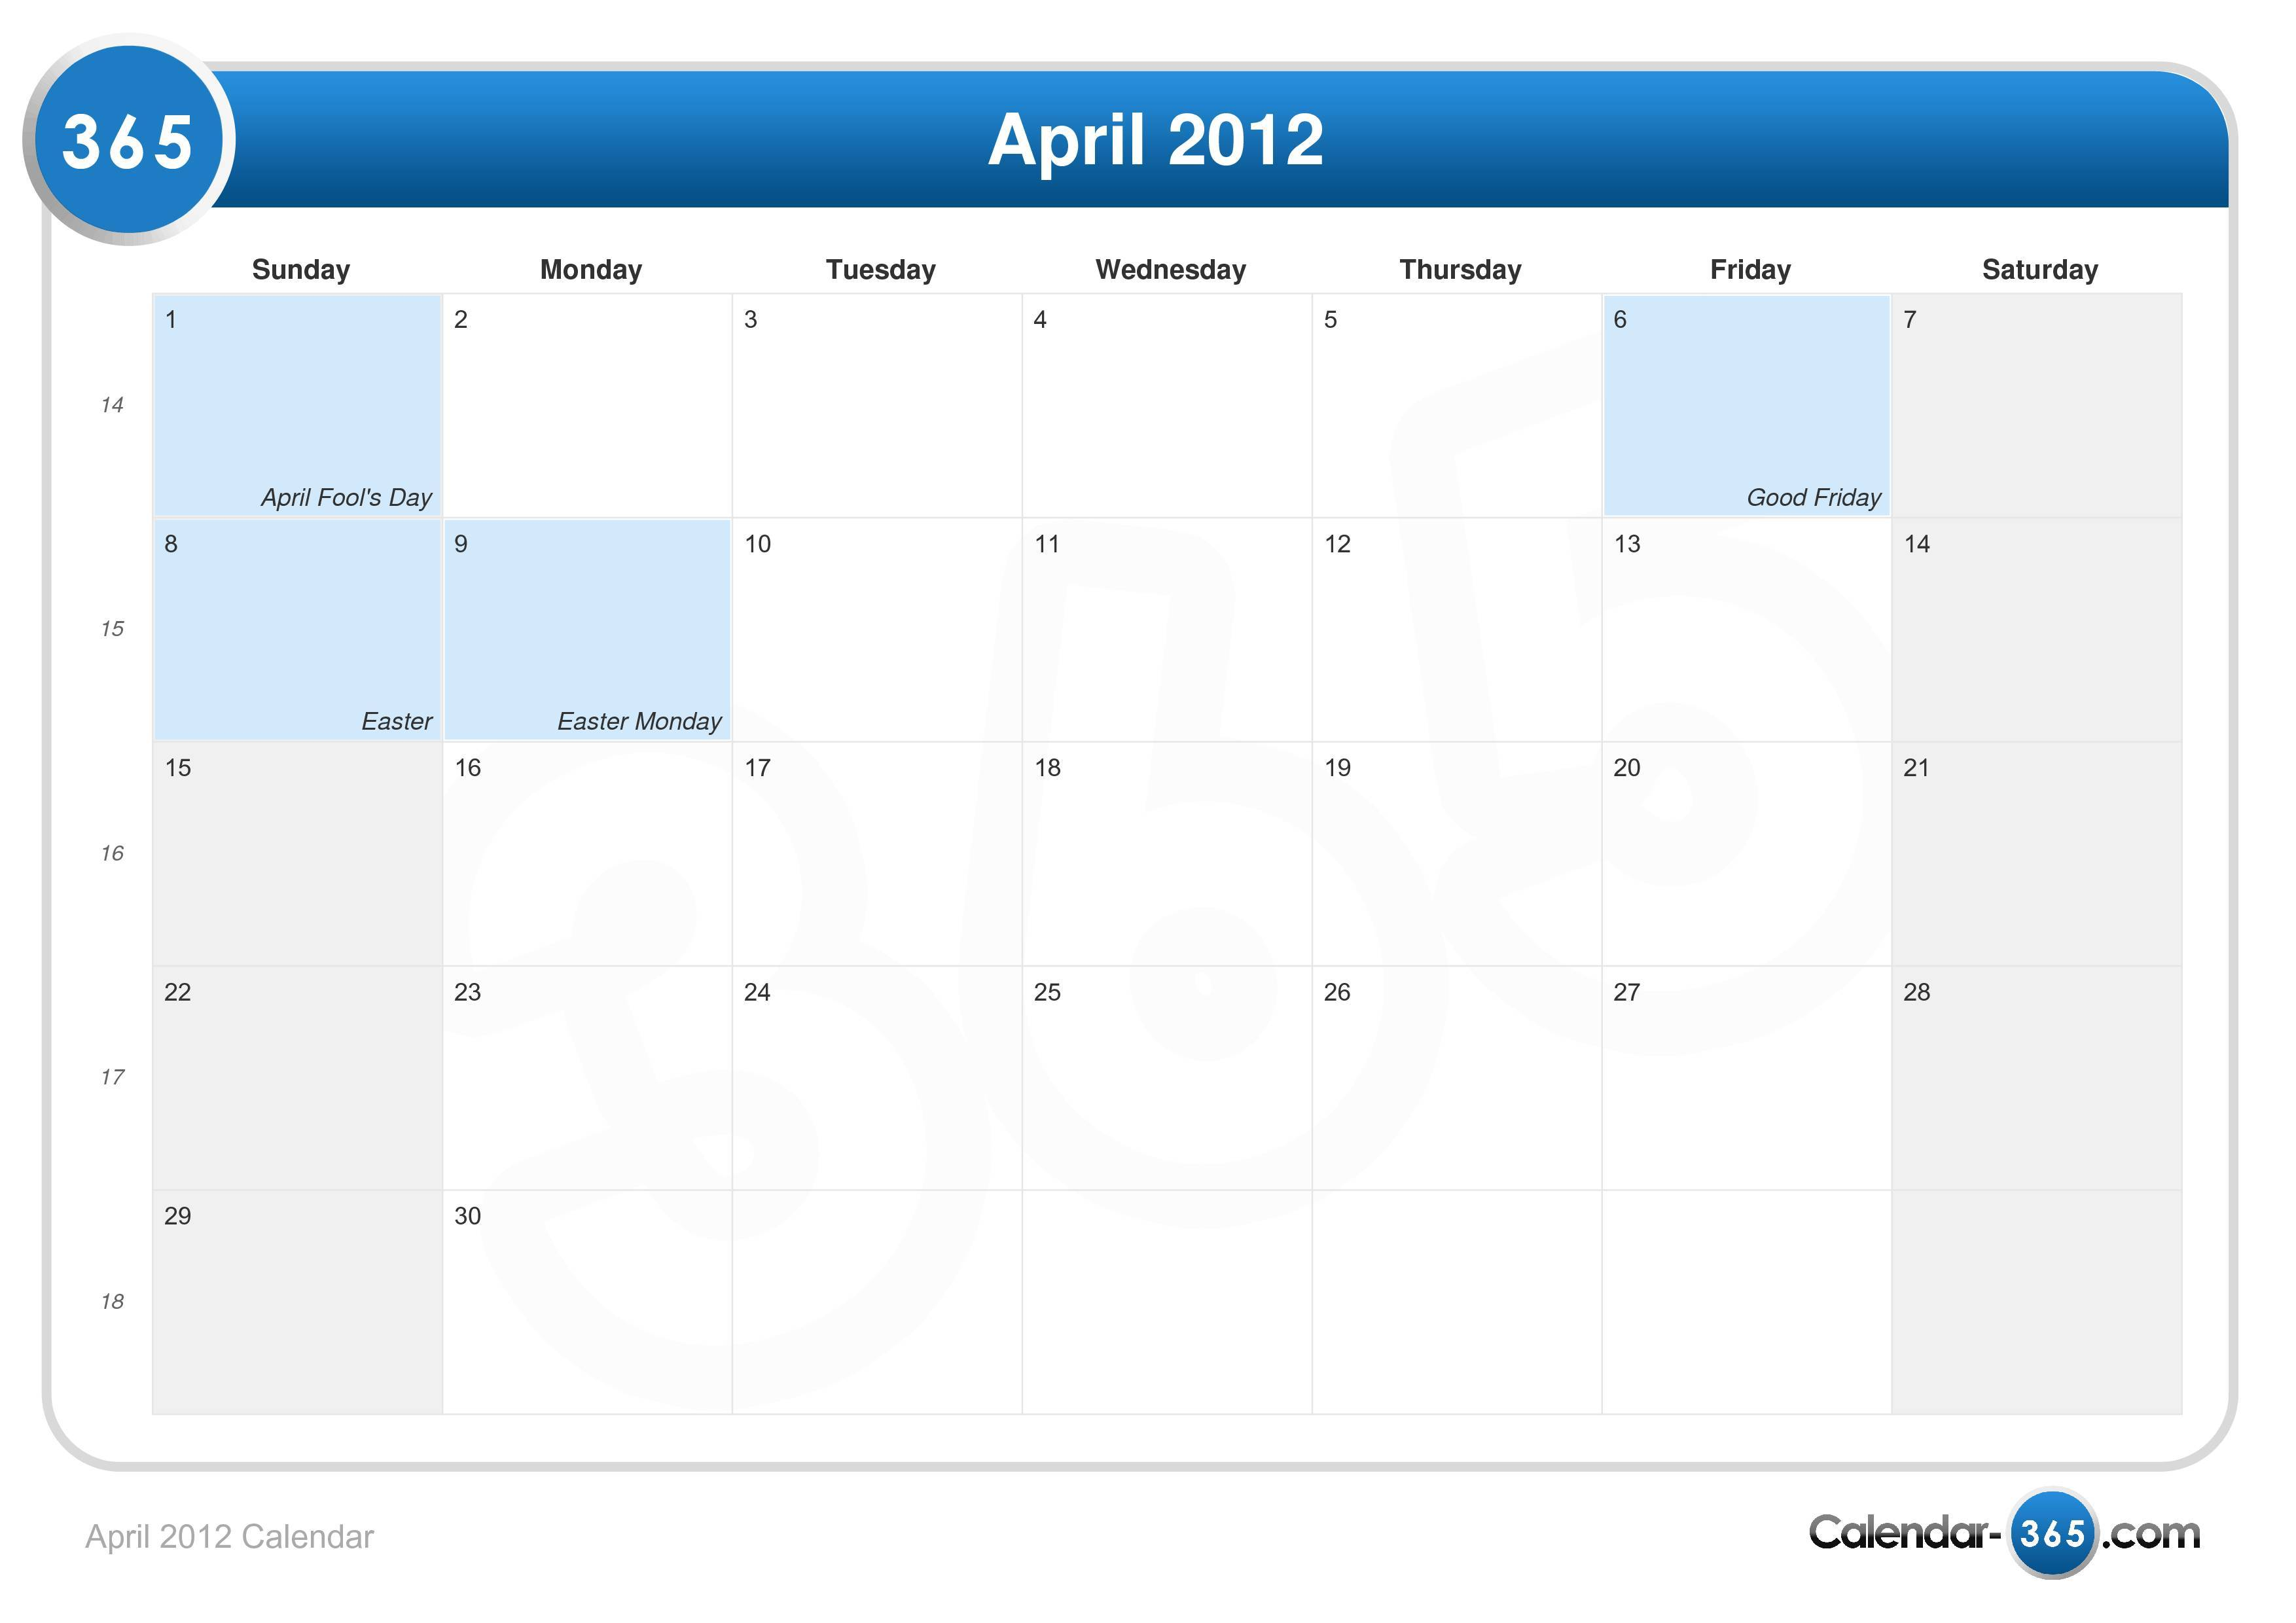 April 2012 Calendar with Holidays - as Picture